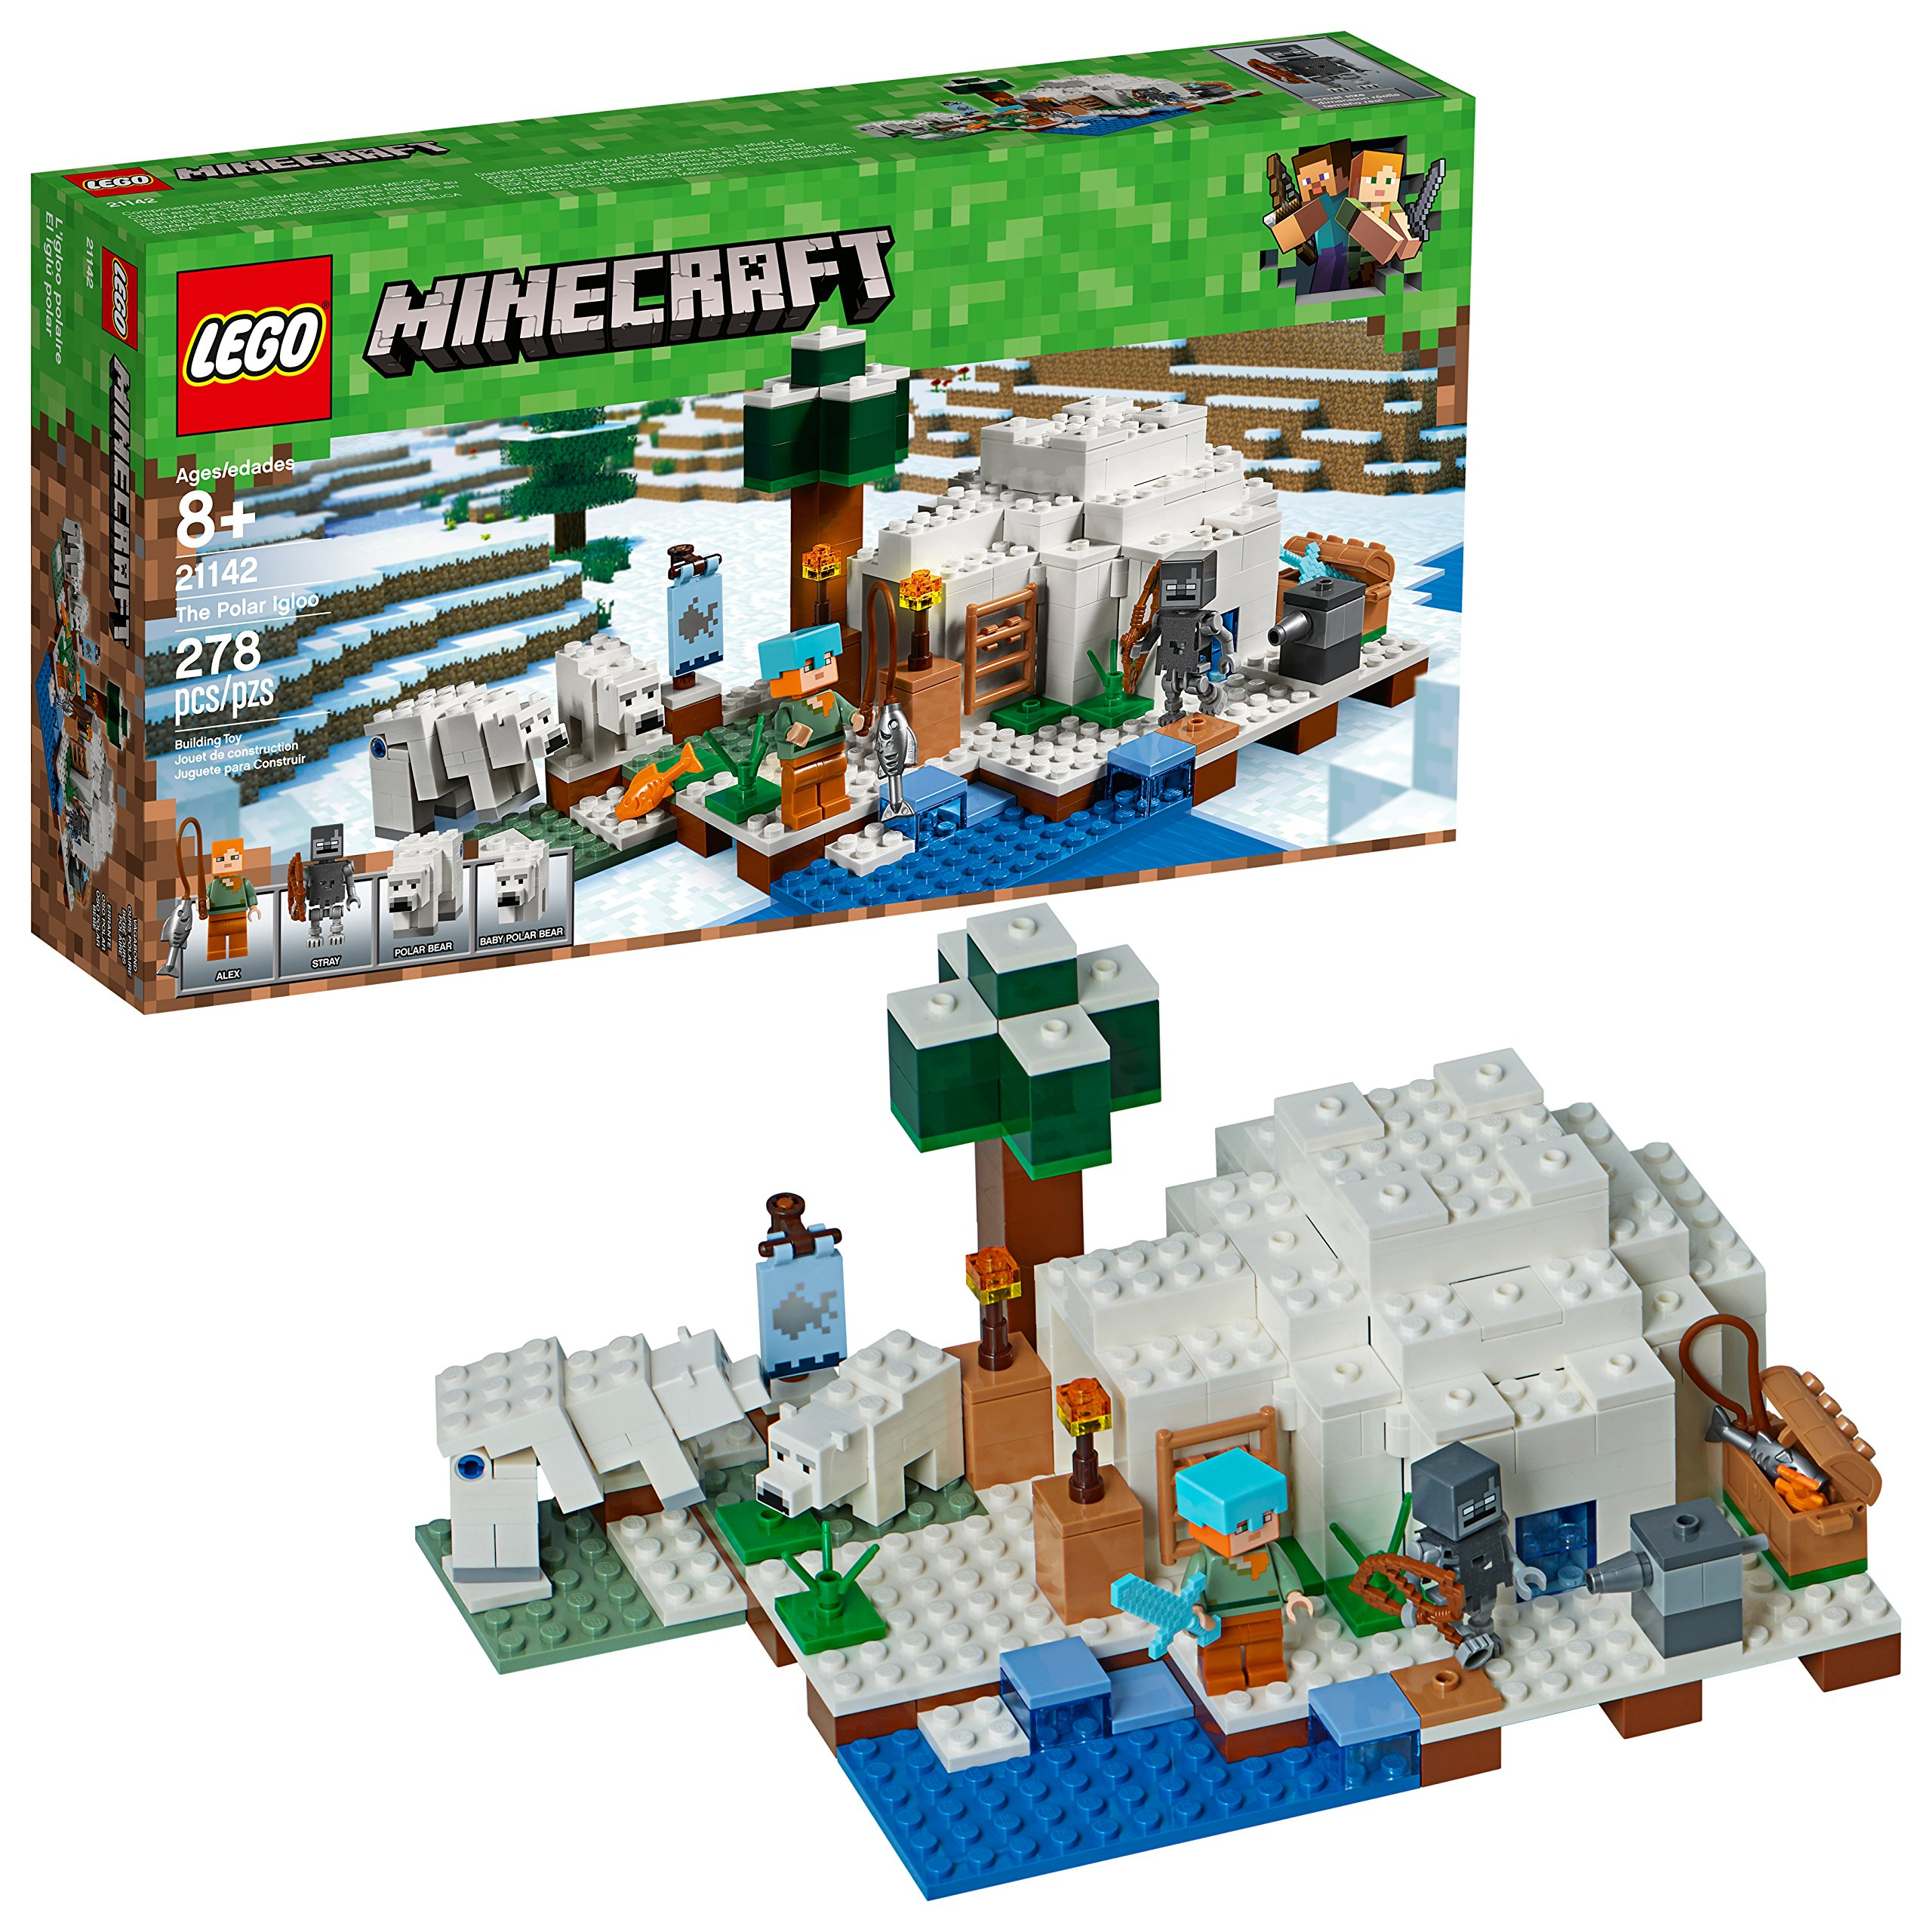 LEGO Minecraft The Polar Igloo 21142 Building Kit (278 Pieces) by LEGO